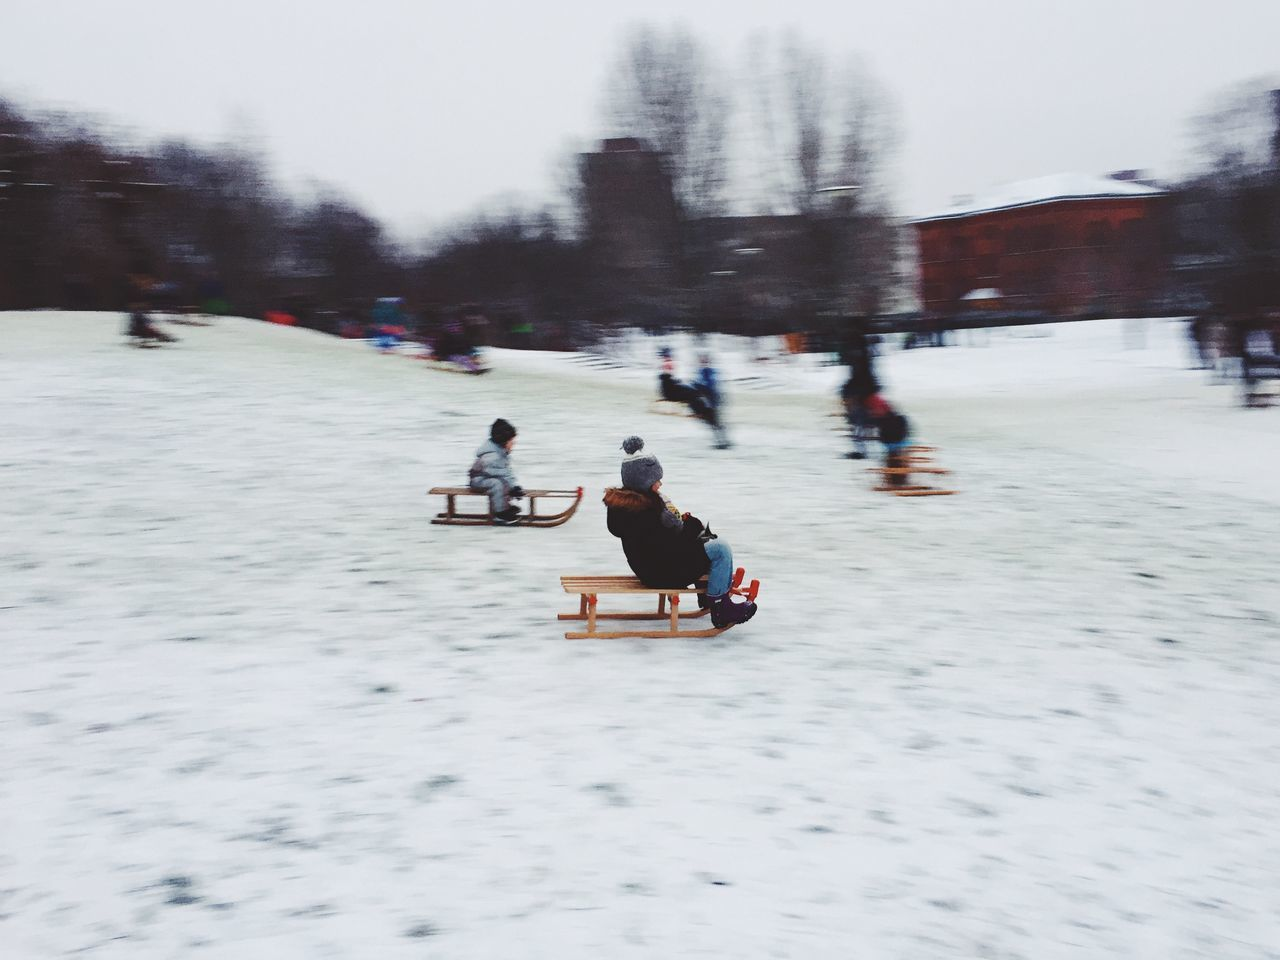 Perfect day for the Kids. #1 Berlin Berlin Photography Berliner Ansichten Blur Blurred Motion Children Cold Temperature Day Ice Rink Kids Move Movement Nature Outdoors People Playing Real People Sled Sledding Snow Snow ❄ Tree Winter Winter Winter Sport